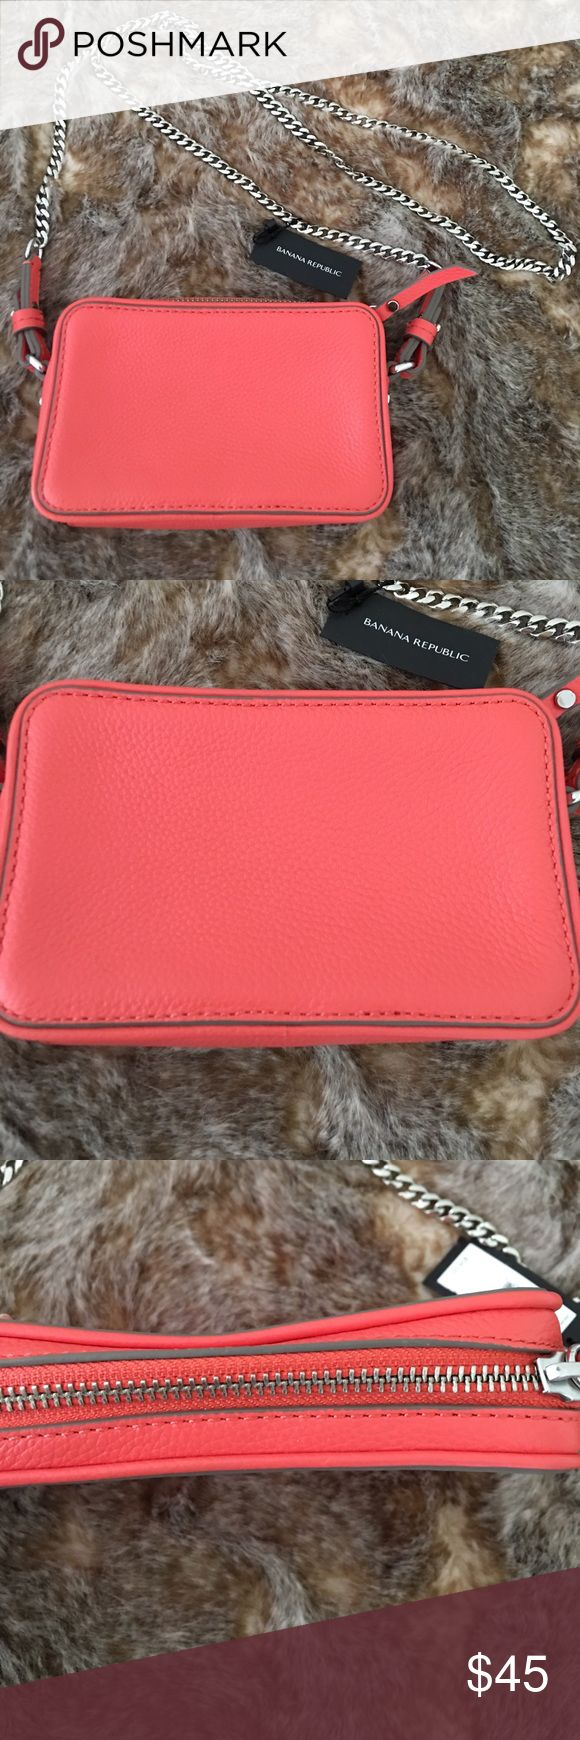 ⭐️HP⭐️NWT Banana Republic Coral Mini Crossbody Bag ⭐️HOST PICK ⭐️ Best in Gifts 🎁  NWT Banana Republic Brand. Coral Pink Mini crossbody purse /handbag. Chain for strap. Pockets inside for credit cards. 6 inches long 4 inches across. It can fit the 6s but not 6S plus. Strap is about 22 inches long. Banana Republic Bags Crossbody Bags